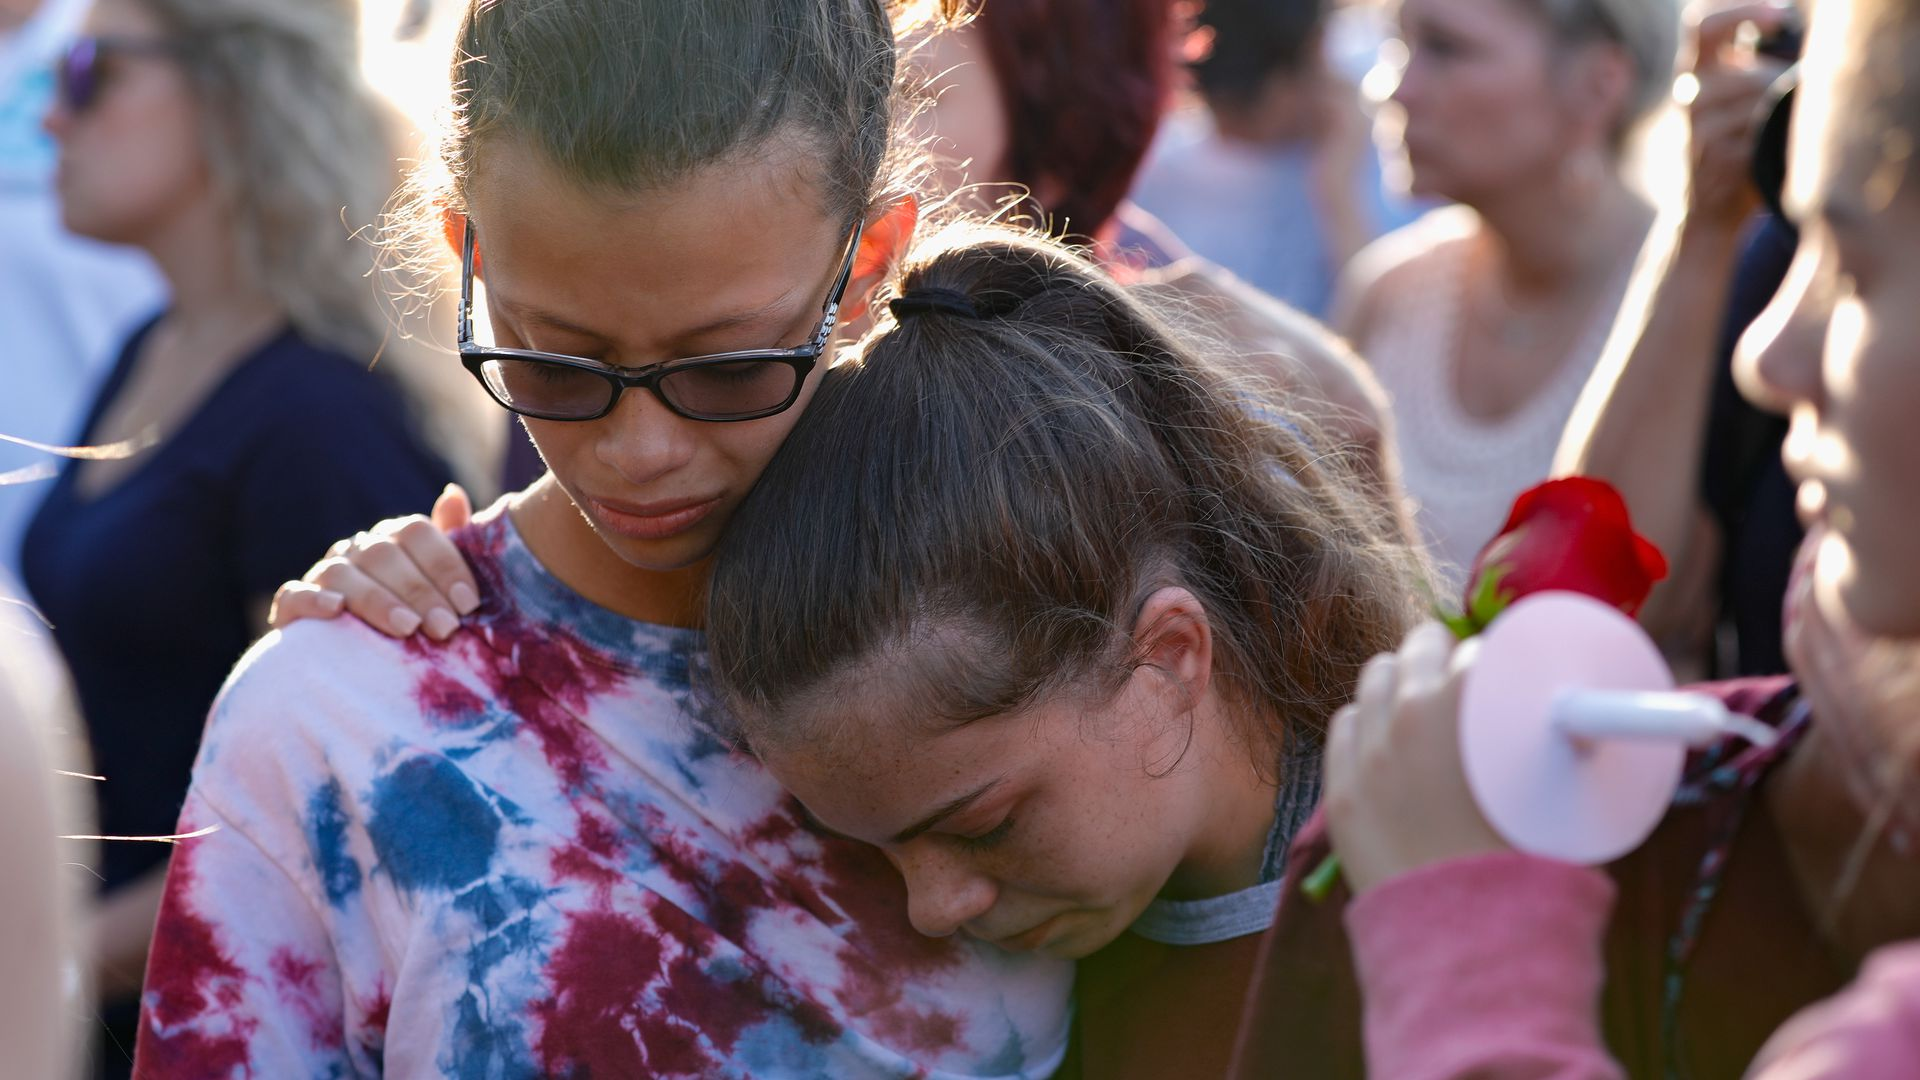 People after the Santa Fe shooting in Texas, which claimed 10 lives on Friday